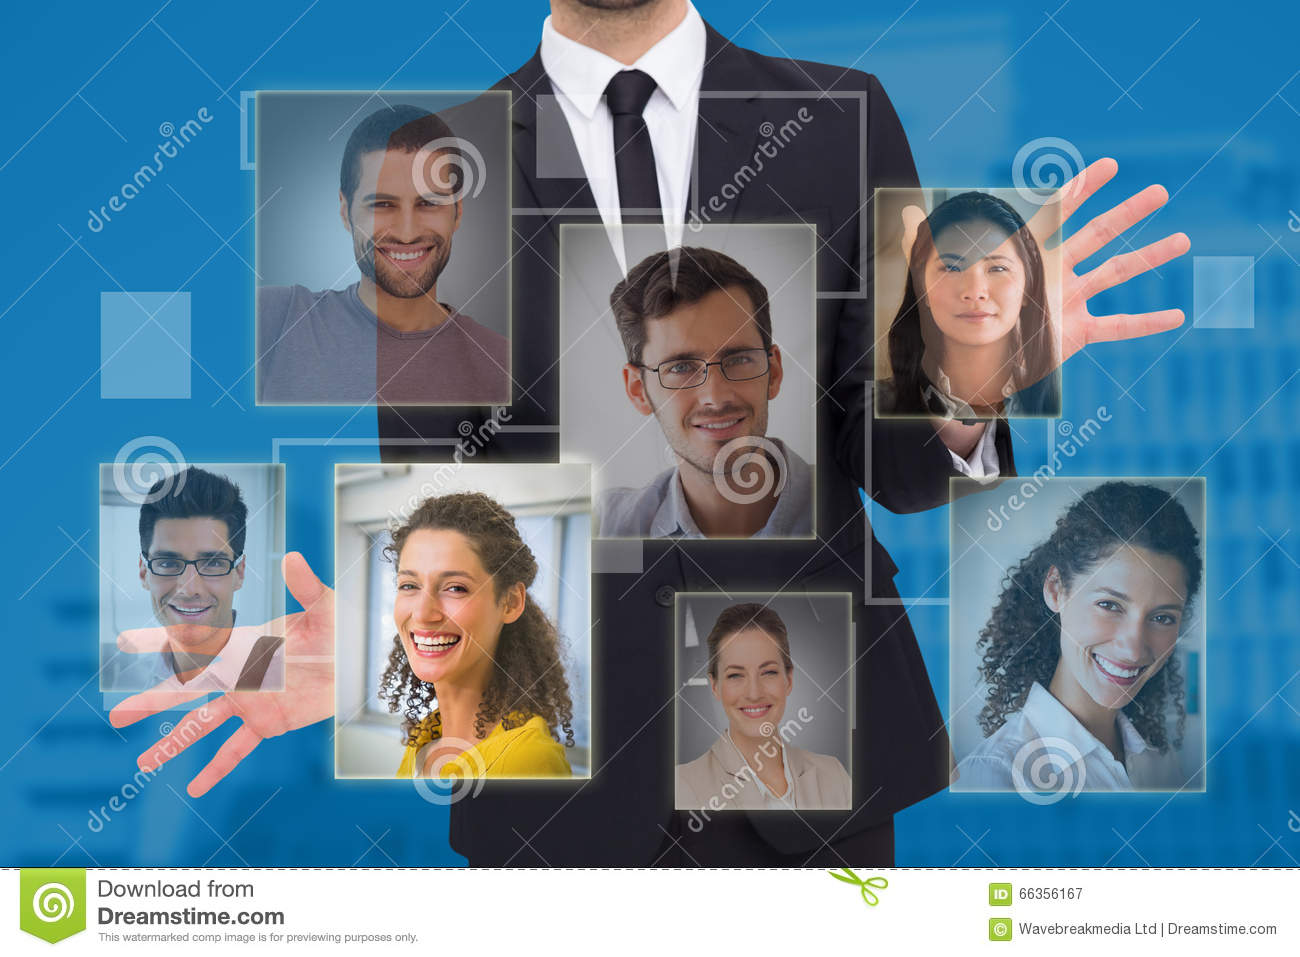 Composite image of businessman standing with hands spread out